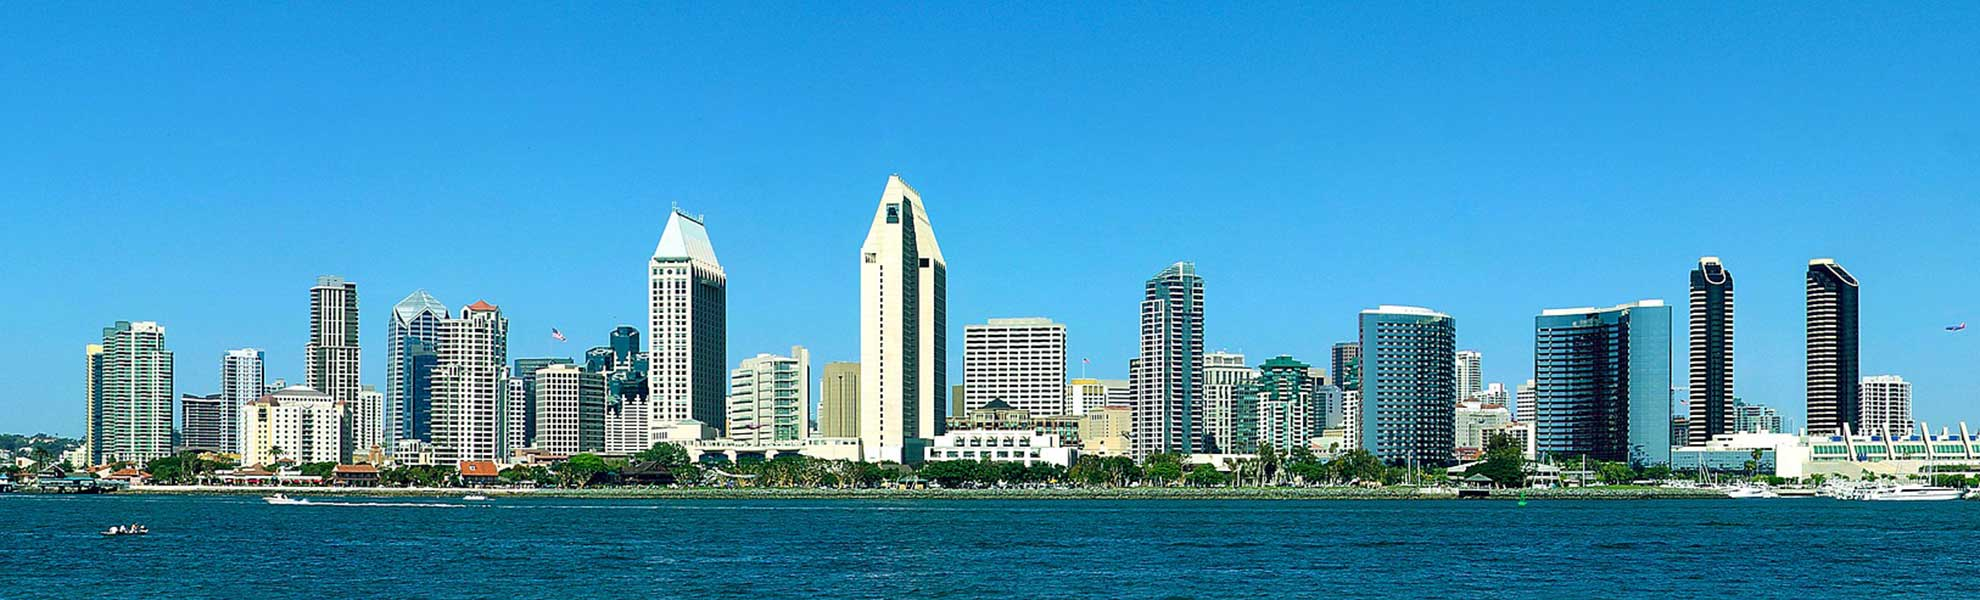 Photo San Diego California skyline and bayfront